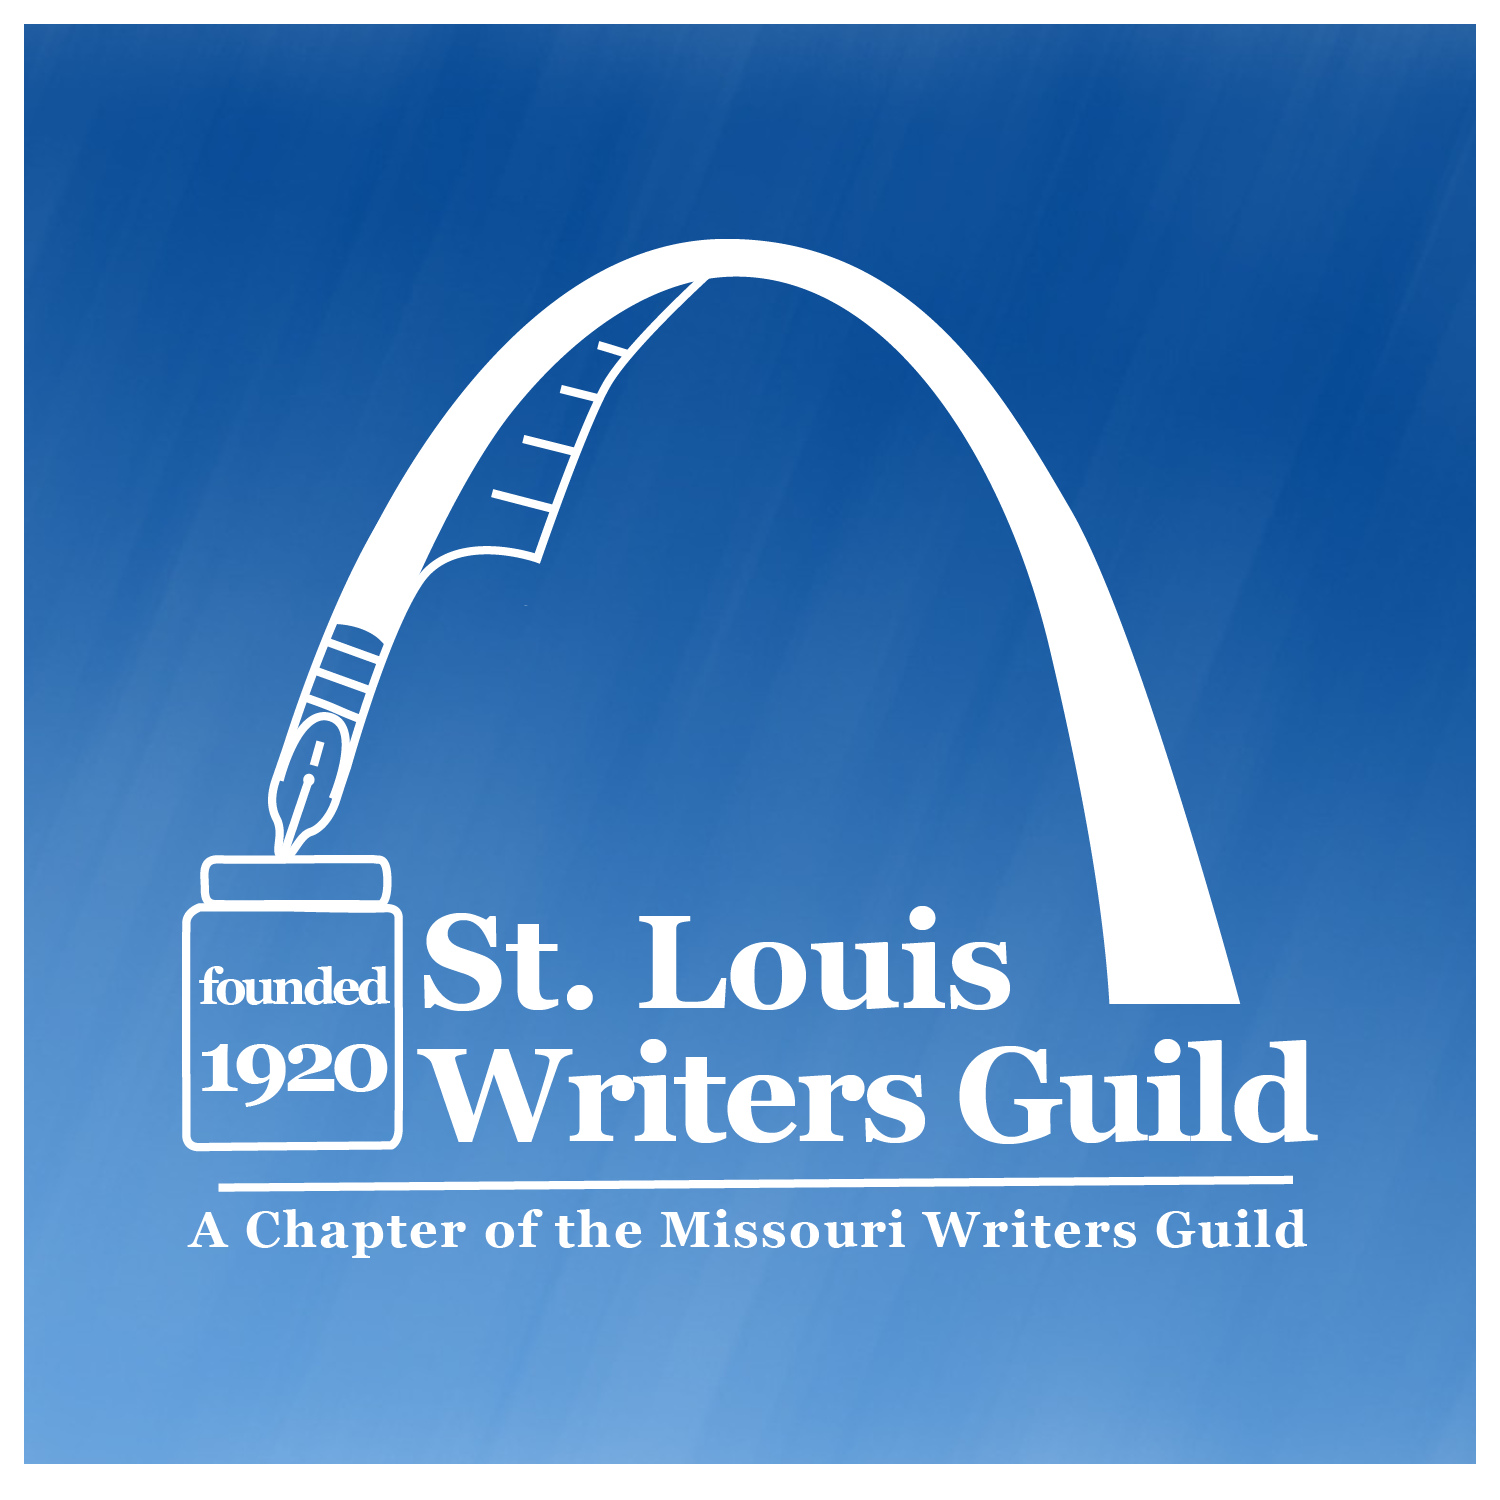 St. Louis Writers Guild